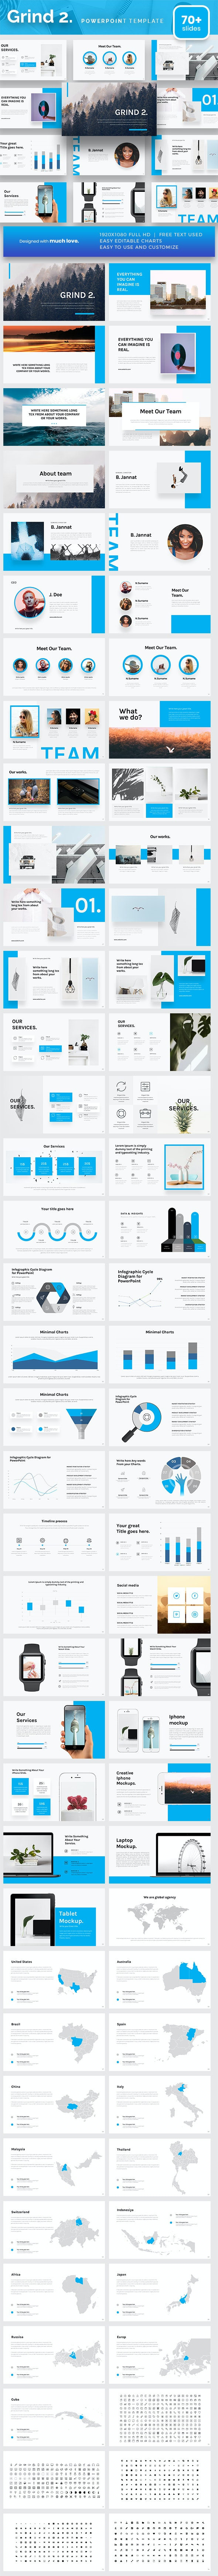 Grind 2 Powerpoint Presentation Template - PowerPoint Templates Presentation Templates